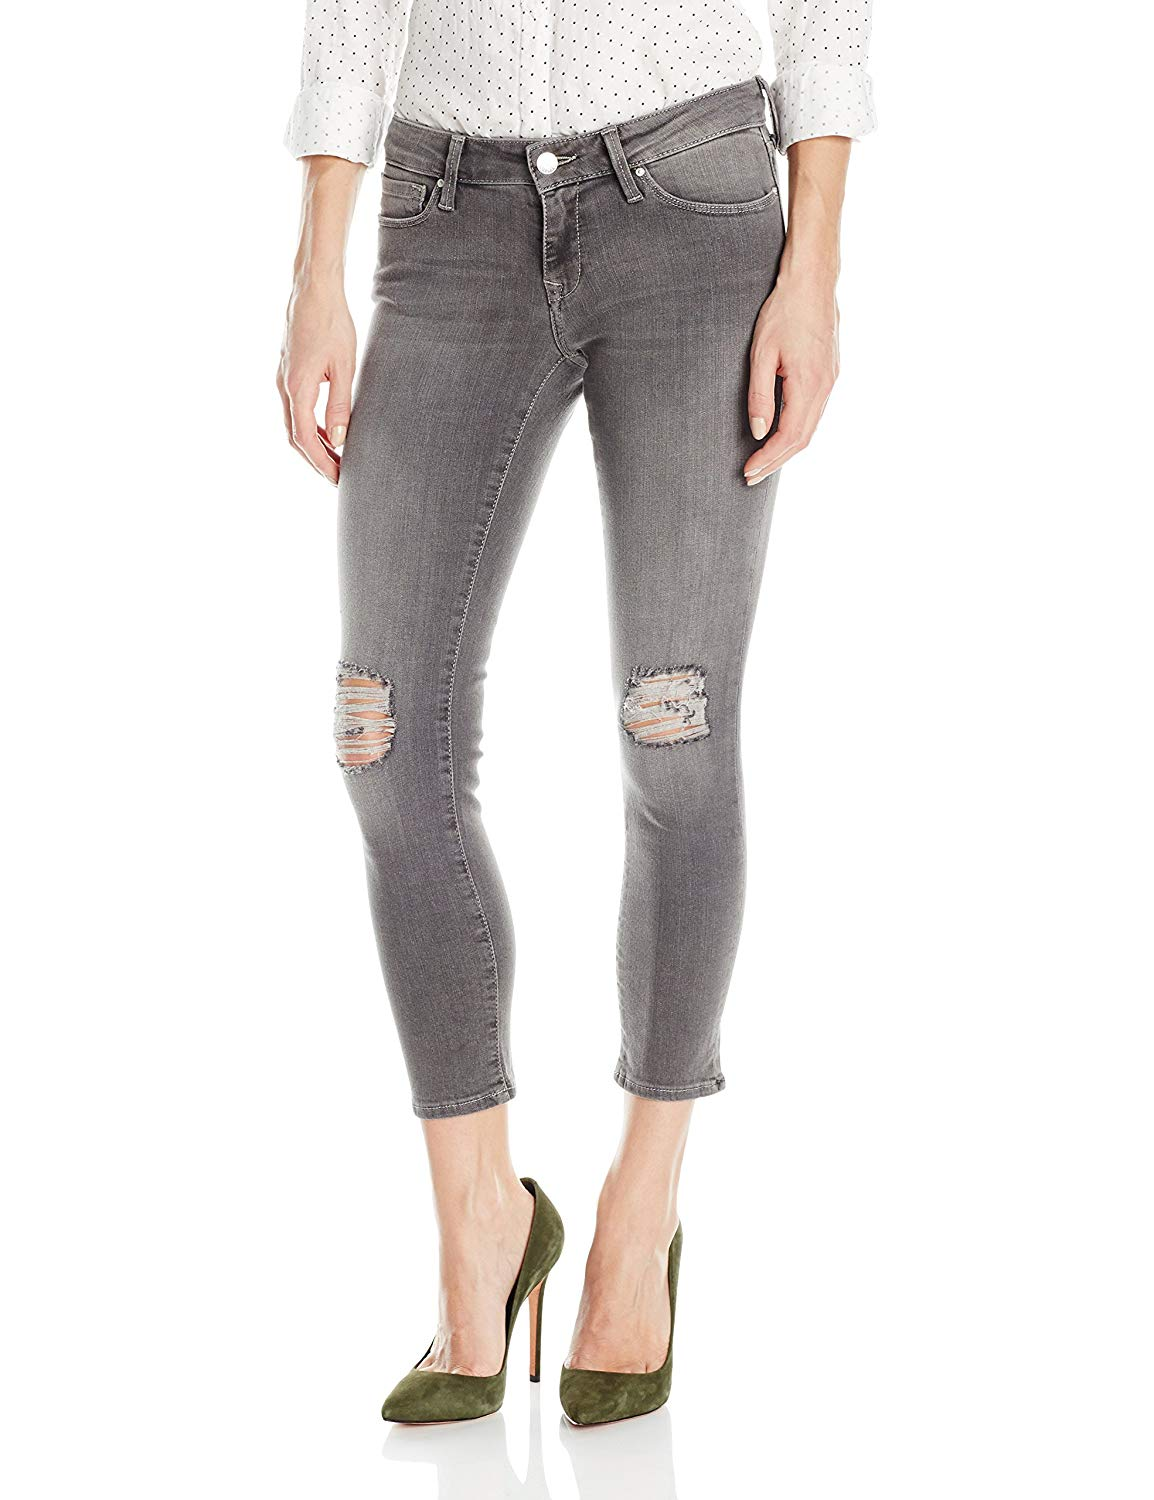 d31a72ec4b4 Get Quotations · Mavi Jeans Women s Petite Serena Super Skinny Low Rise